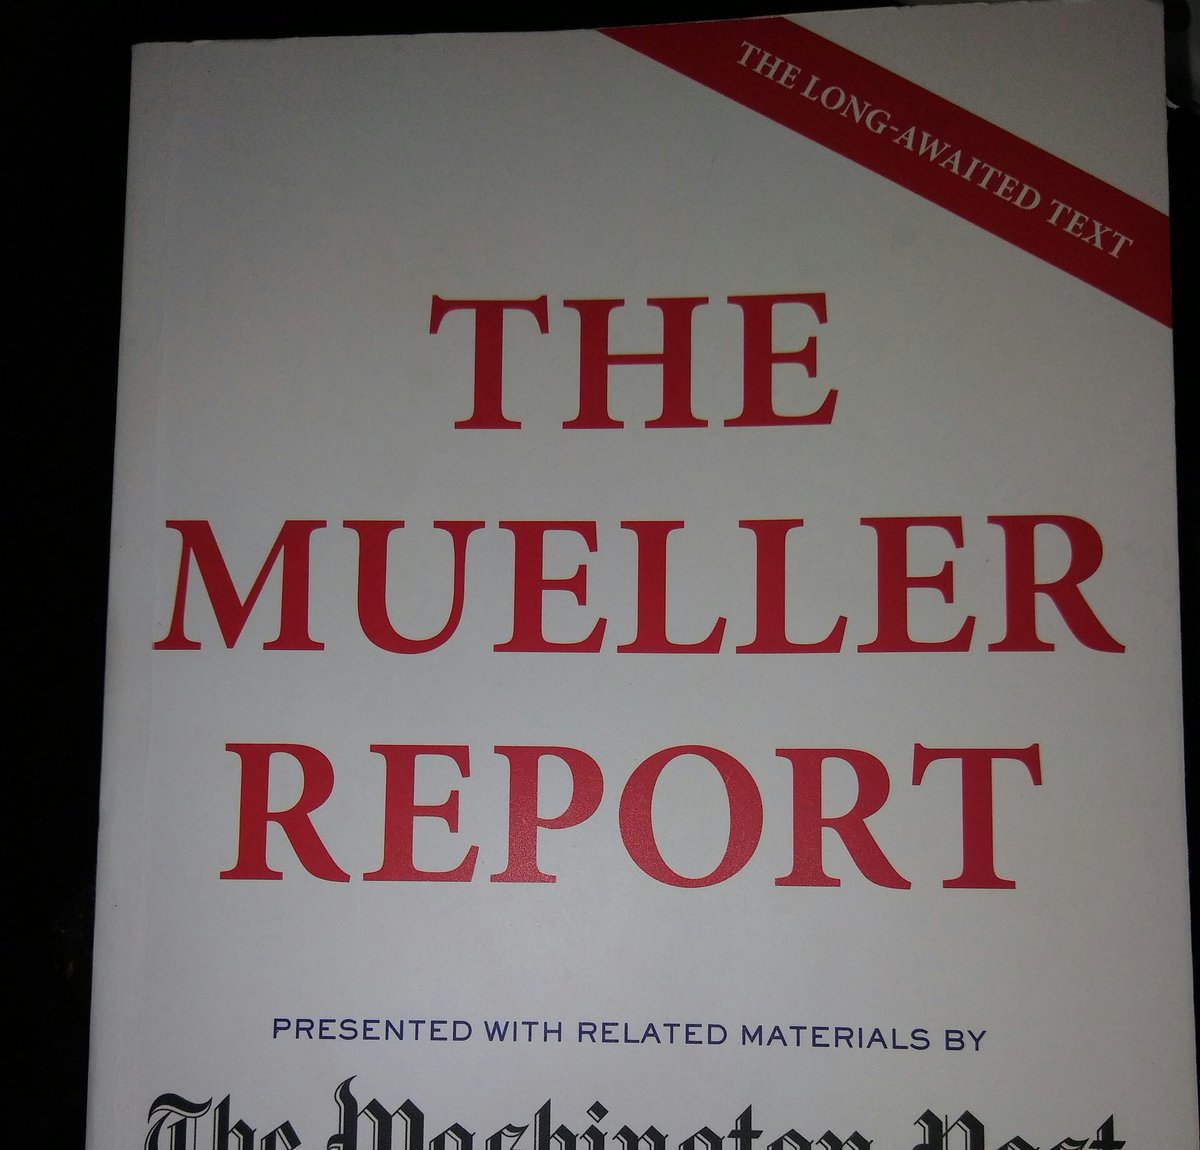 YUGER even... the #MuellerReport YOOOGEST EVER SEEN BY ANYBODY ANYWHERE IN EVEREST HISTORY. Most people don't know, right? YUGE STORY!! @realDonaldTrump his @GOP cohorts & family of corruption LIE ALL THE TIME #BarrCoverUp #LockMnuchinUp #ImpeachTrump #lindseygrahamobstructed <br>http://pic.twitter.com/LR8iCCwdvg